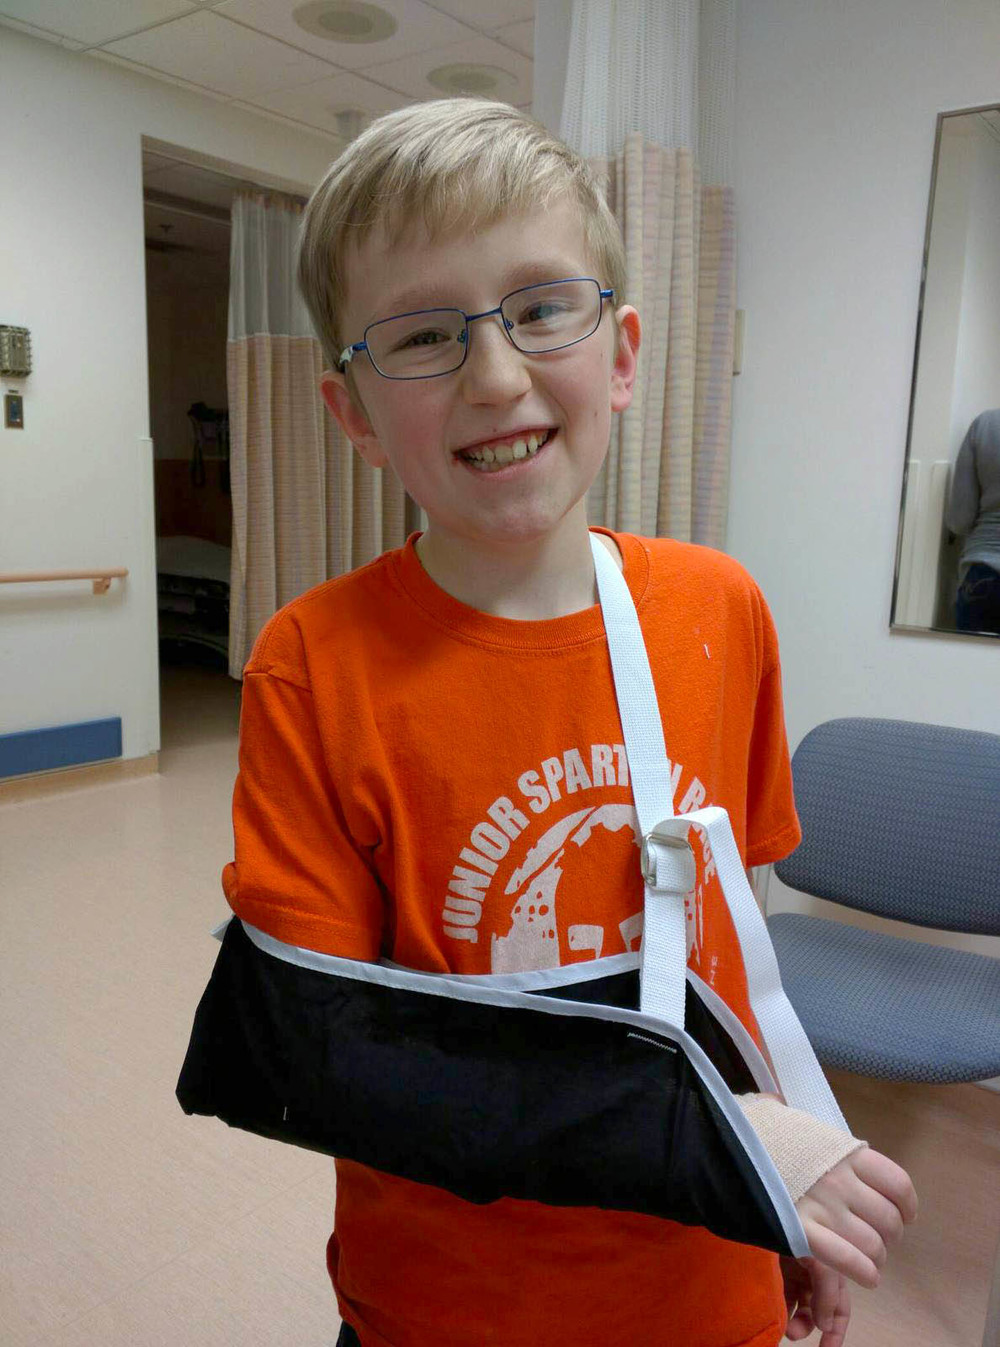 Jabin smiling in Emergency after getting his wrist X-Rayed and wrapped. I'm not sure who this was harder on--me or him. I managed to hold it together during the entire crisis, though, so Yay! me. February 15, 2016